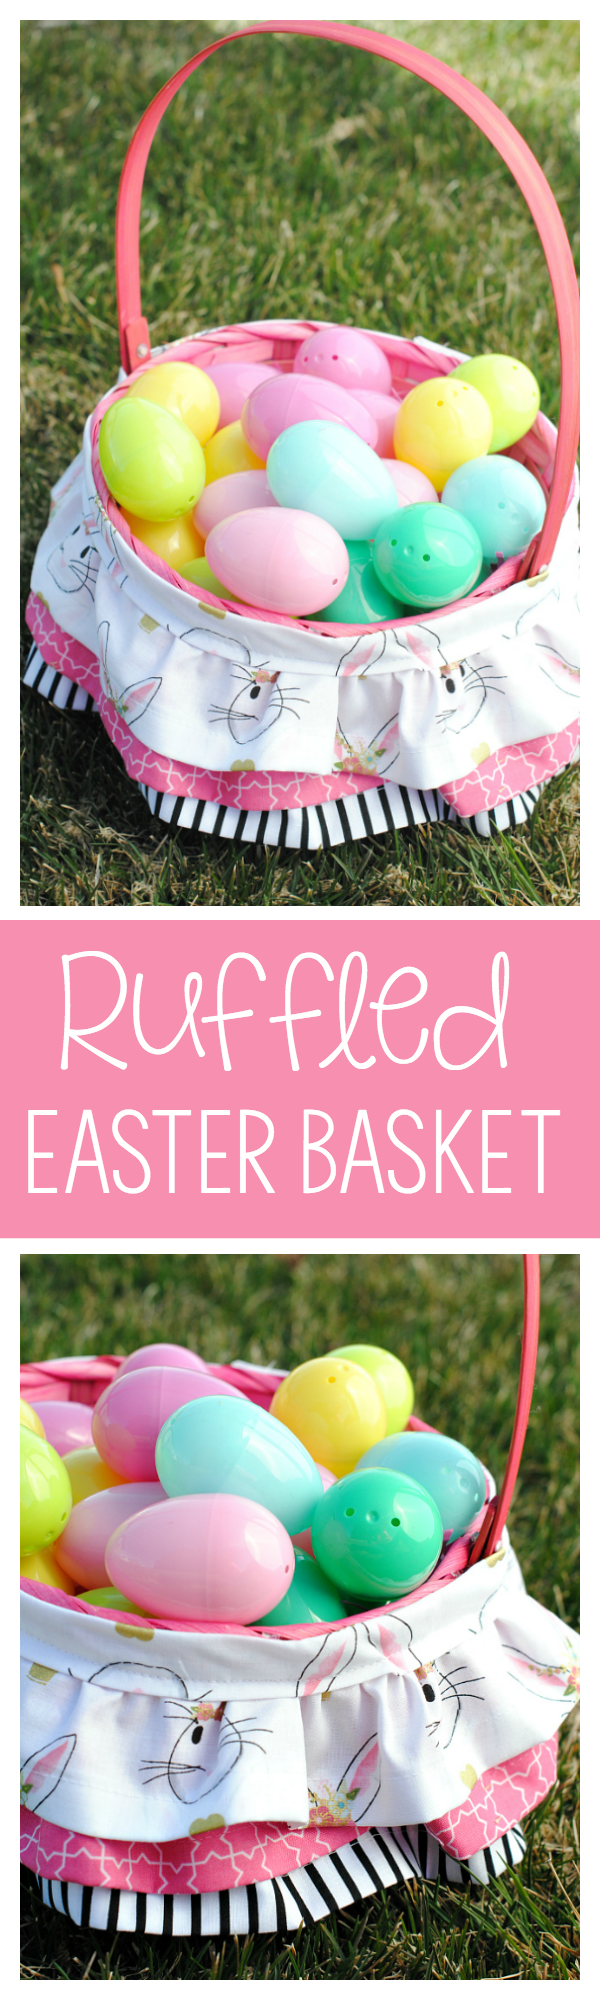 Cute Ruffled Easter Basket for Girls-Easy to Follow Tutorial to make a fun and creative Easter basket that the little girls will love! #easter #freepatterns #sew #easterbasket #easterbasketideas